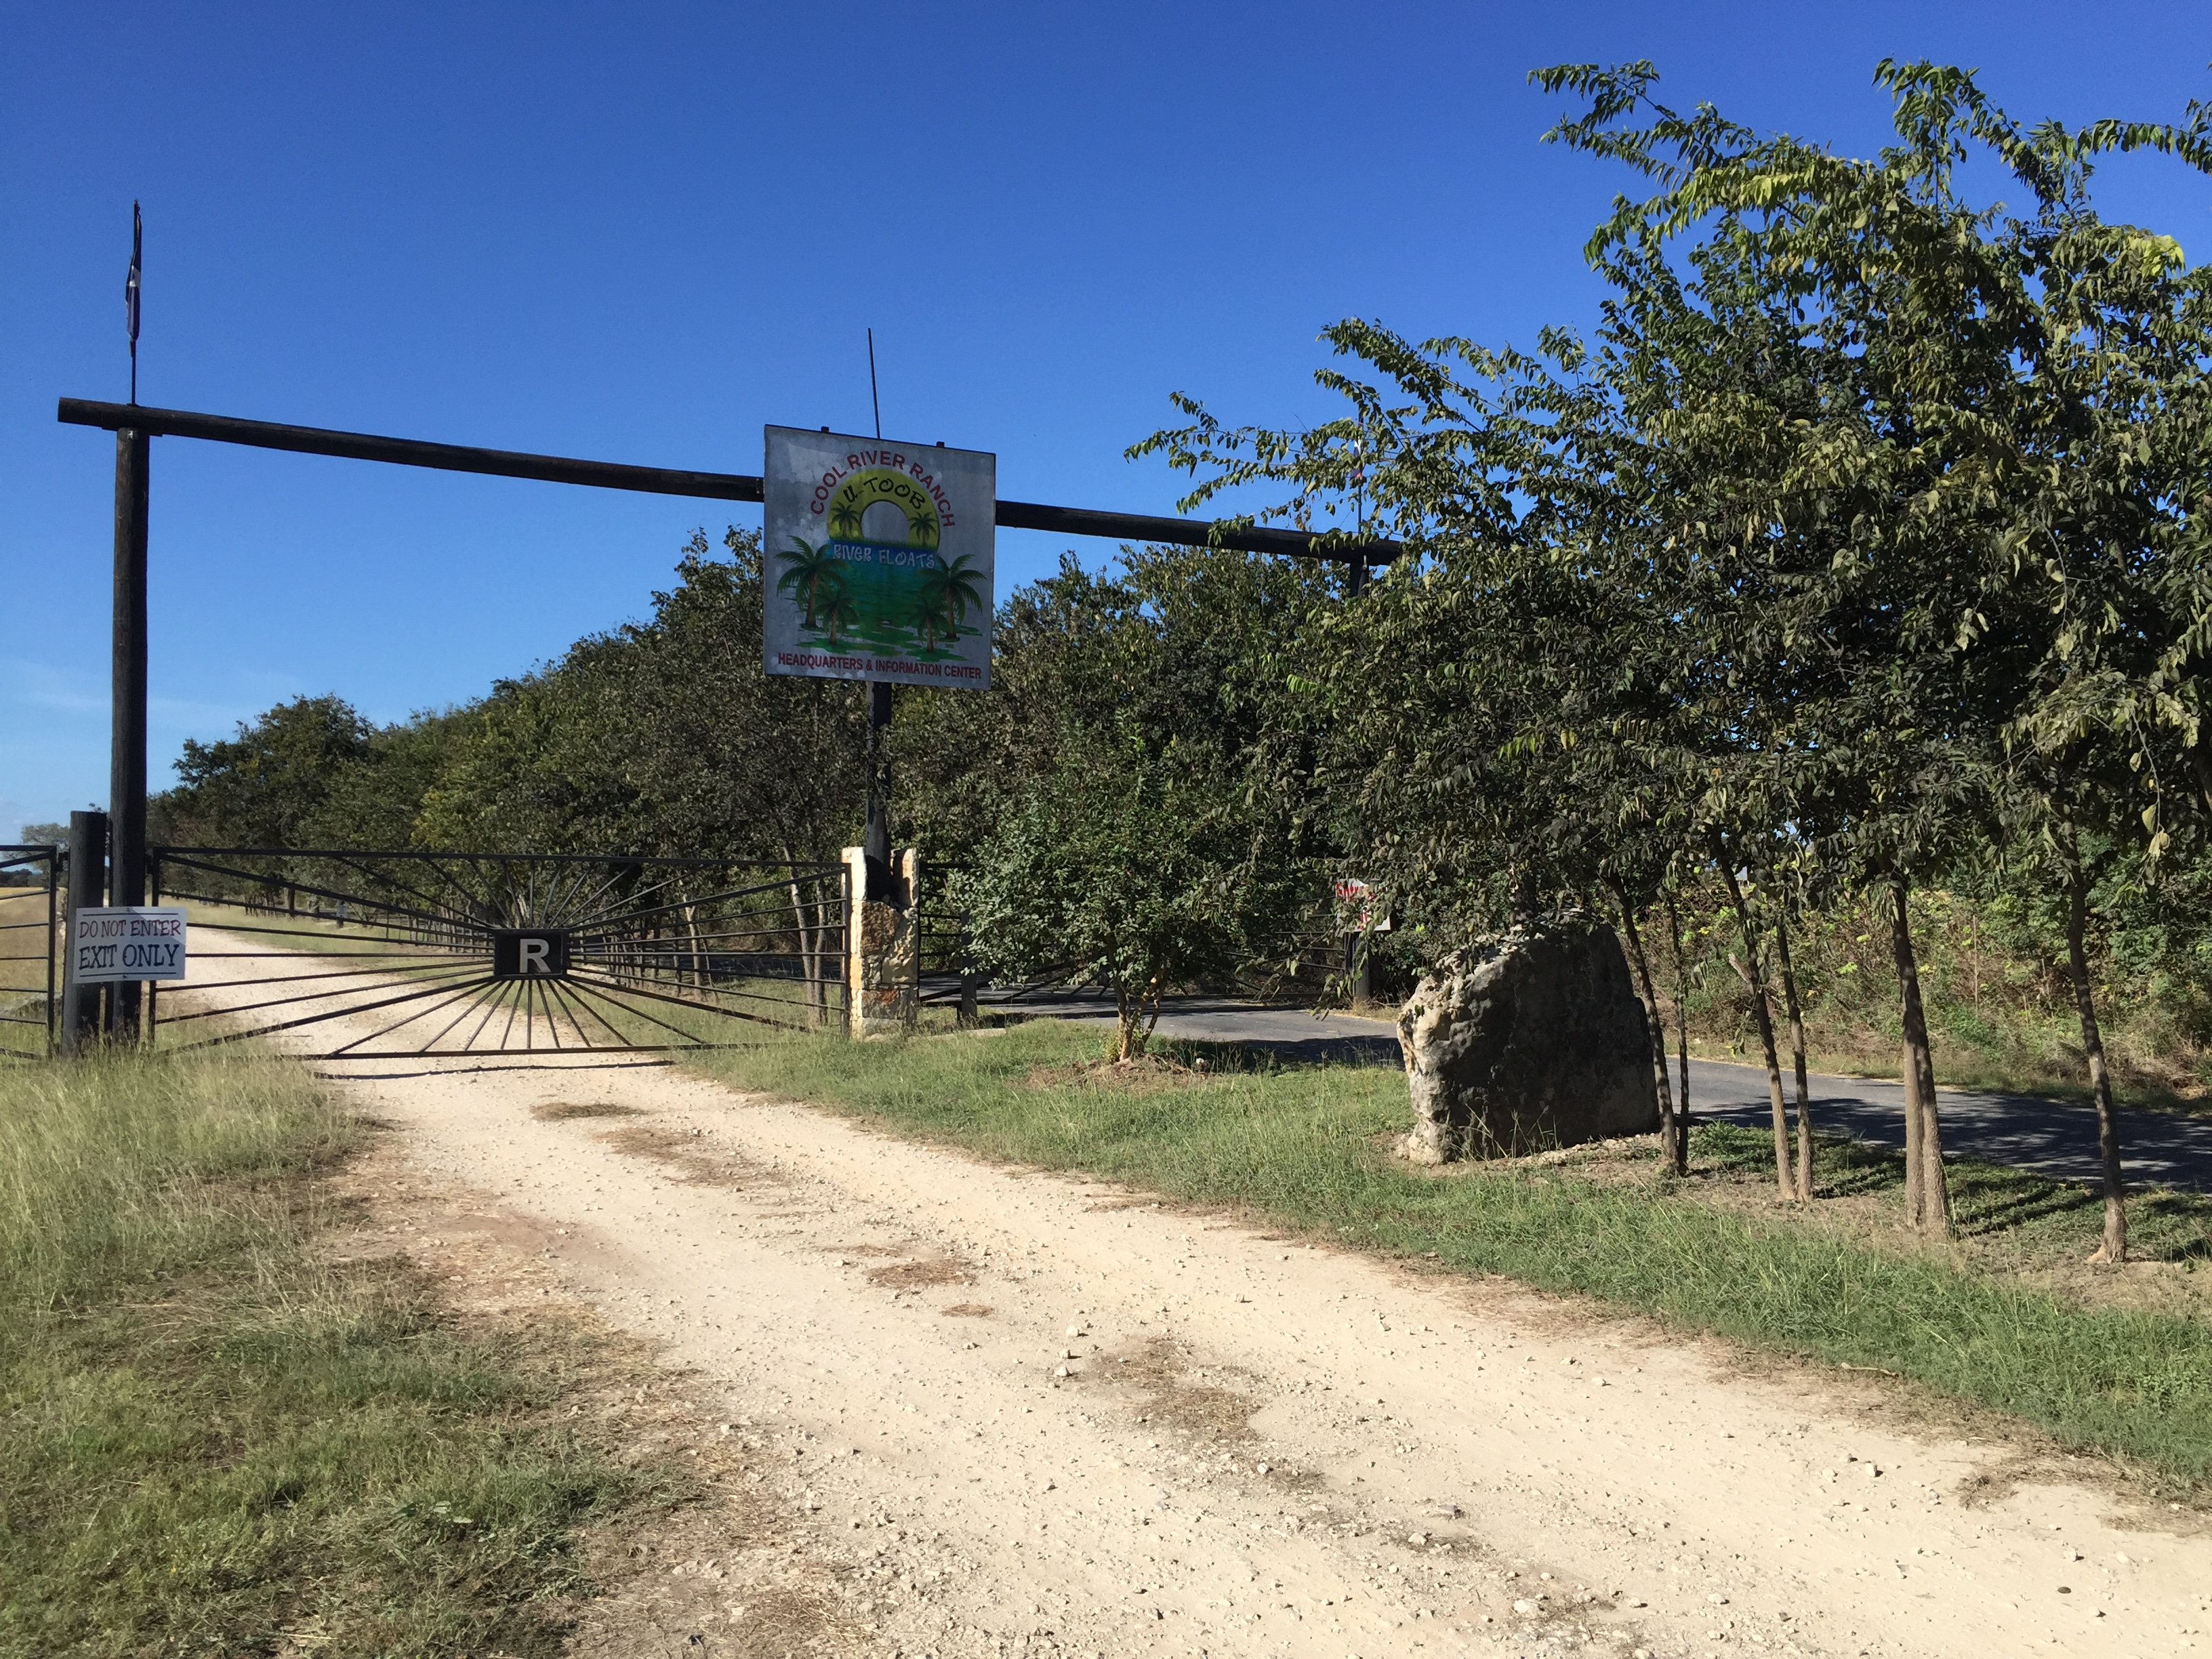 A Texas State student was found dead at the Cool River Ranch property. (KXAN/Todd Bailey)